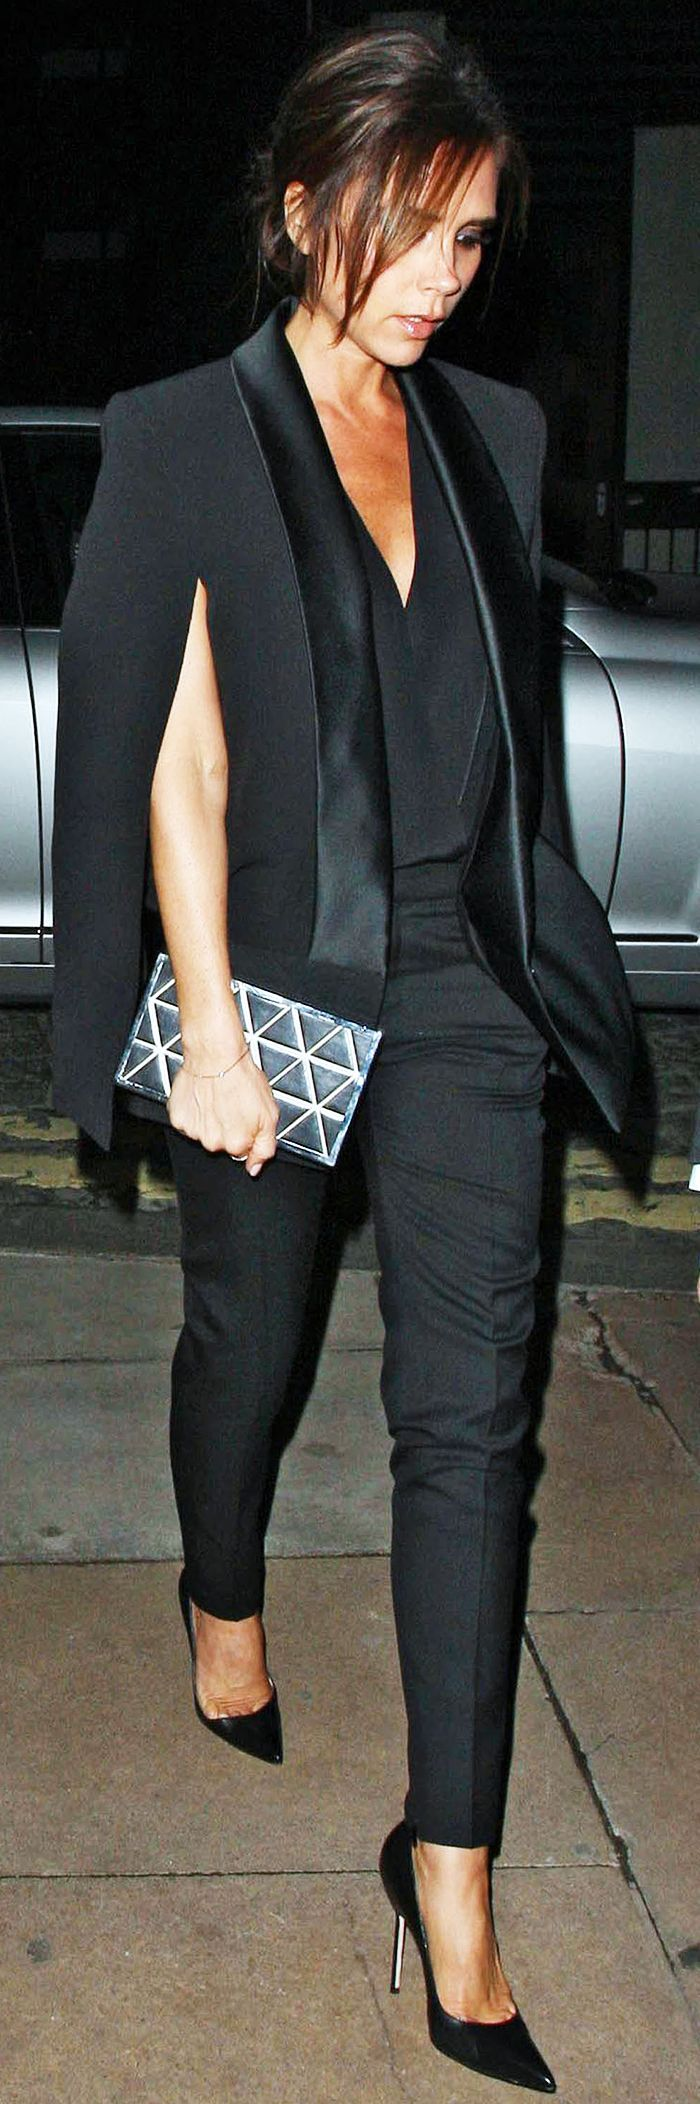 Victoria Beckham in a tuxedo cape, trousers, and point-toe heels